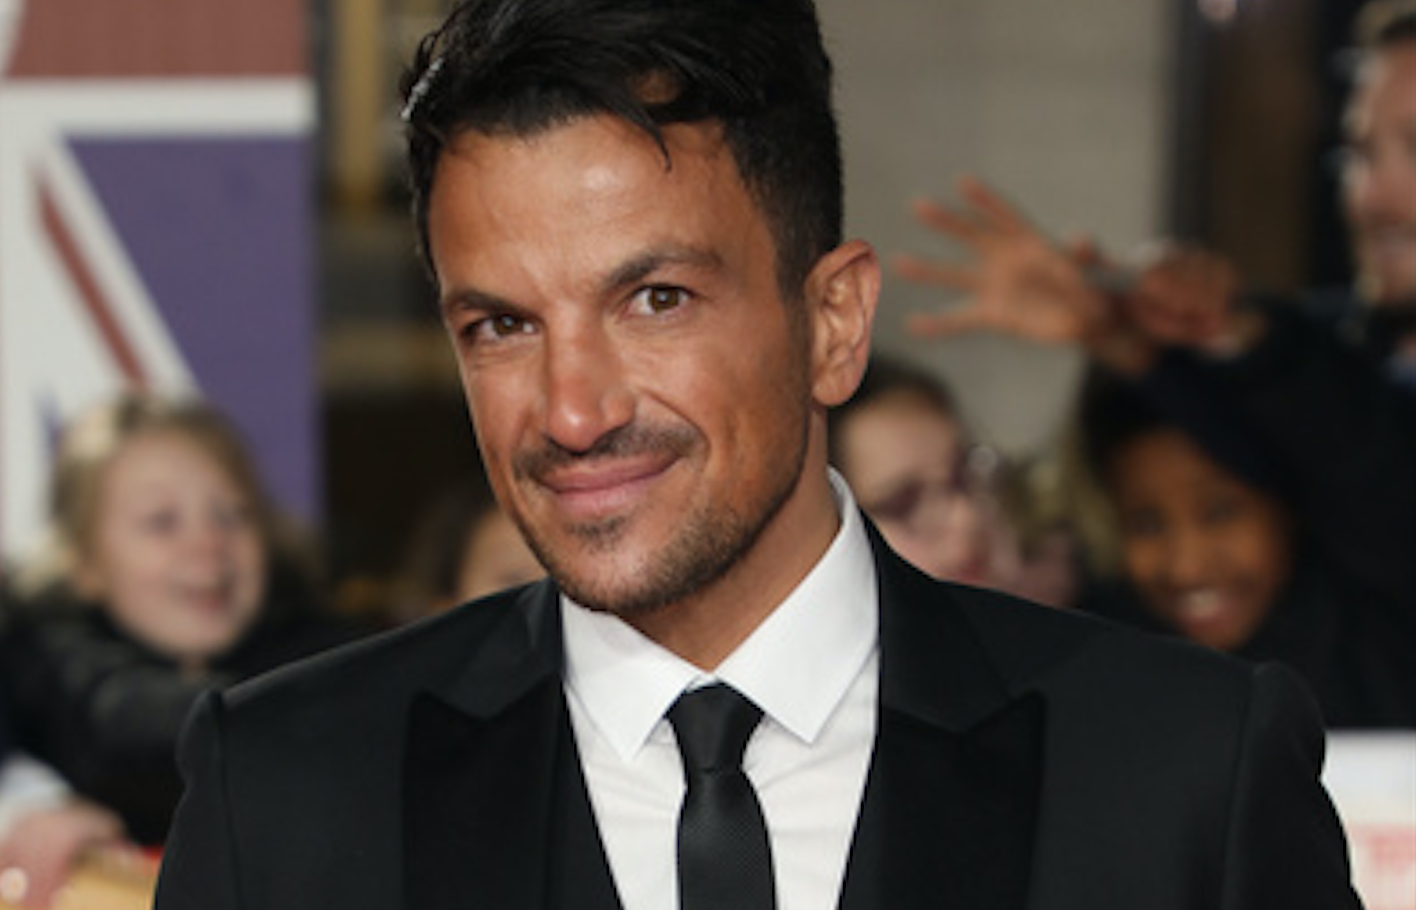 Peter Andre denies claims fans were 'ordered not to touch him' amid coronavirus fears